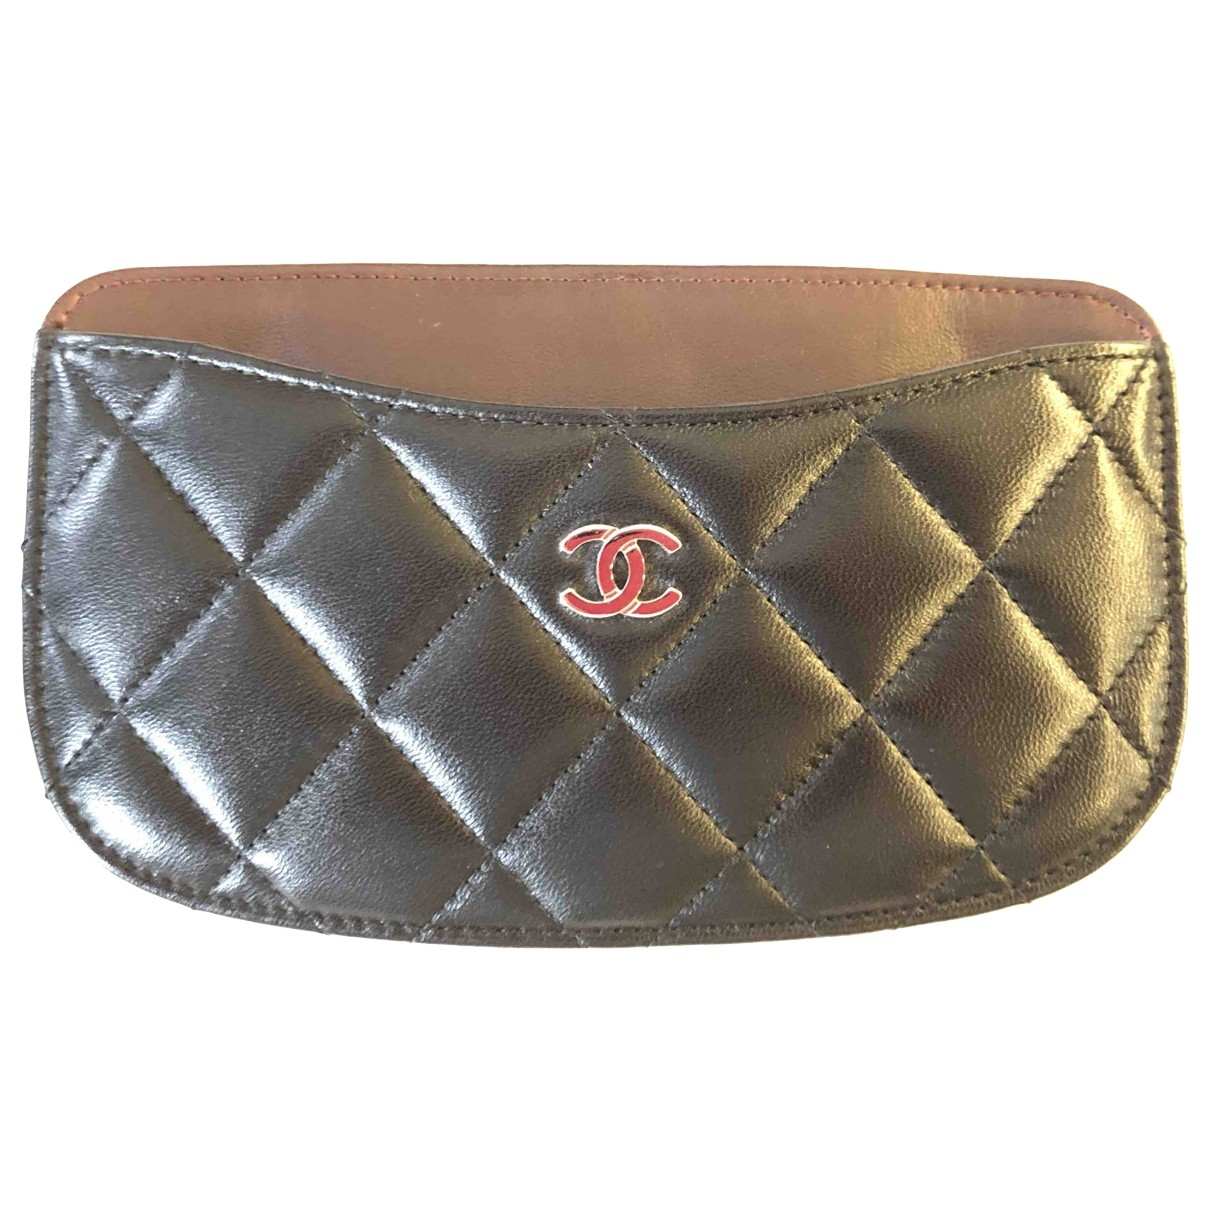 Chanel Timeless/Classique Black Leather Purses, wallet & cases for Women \N